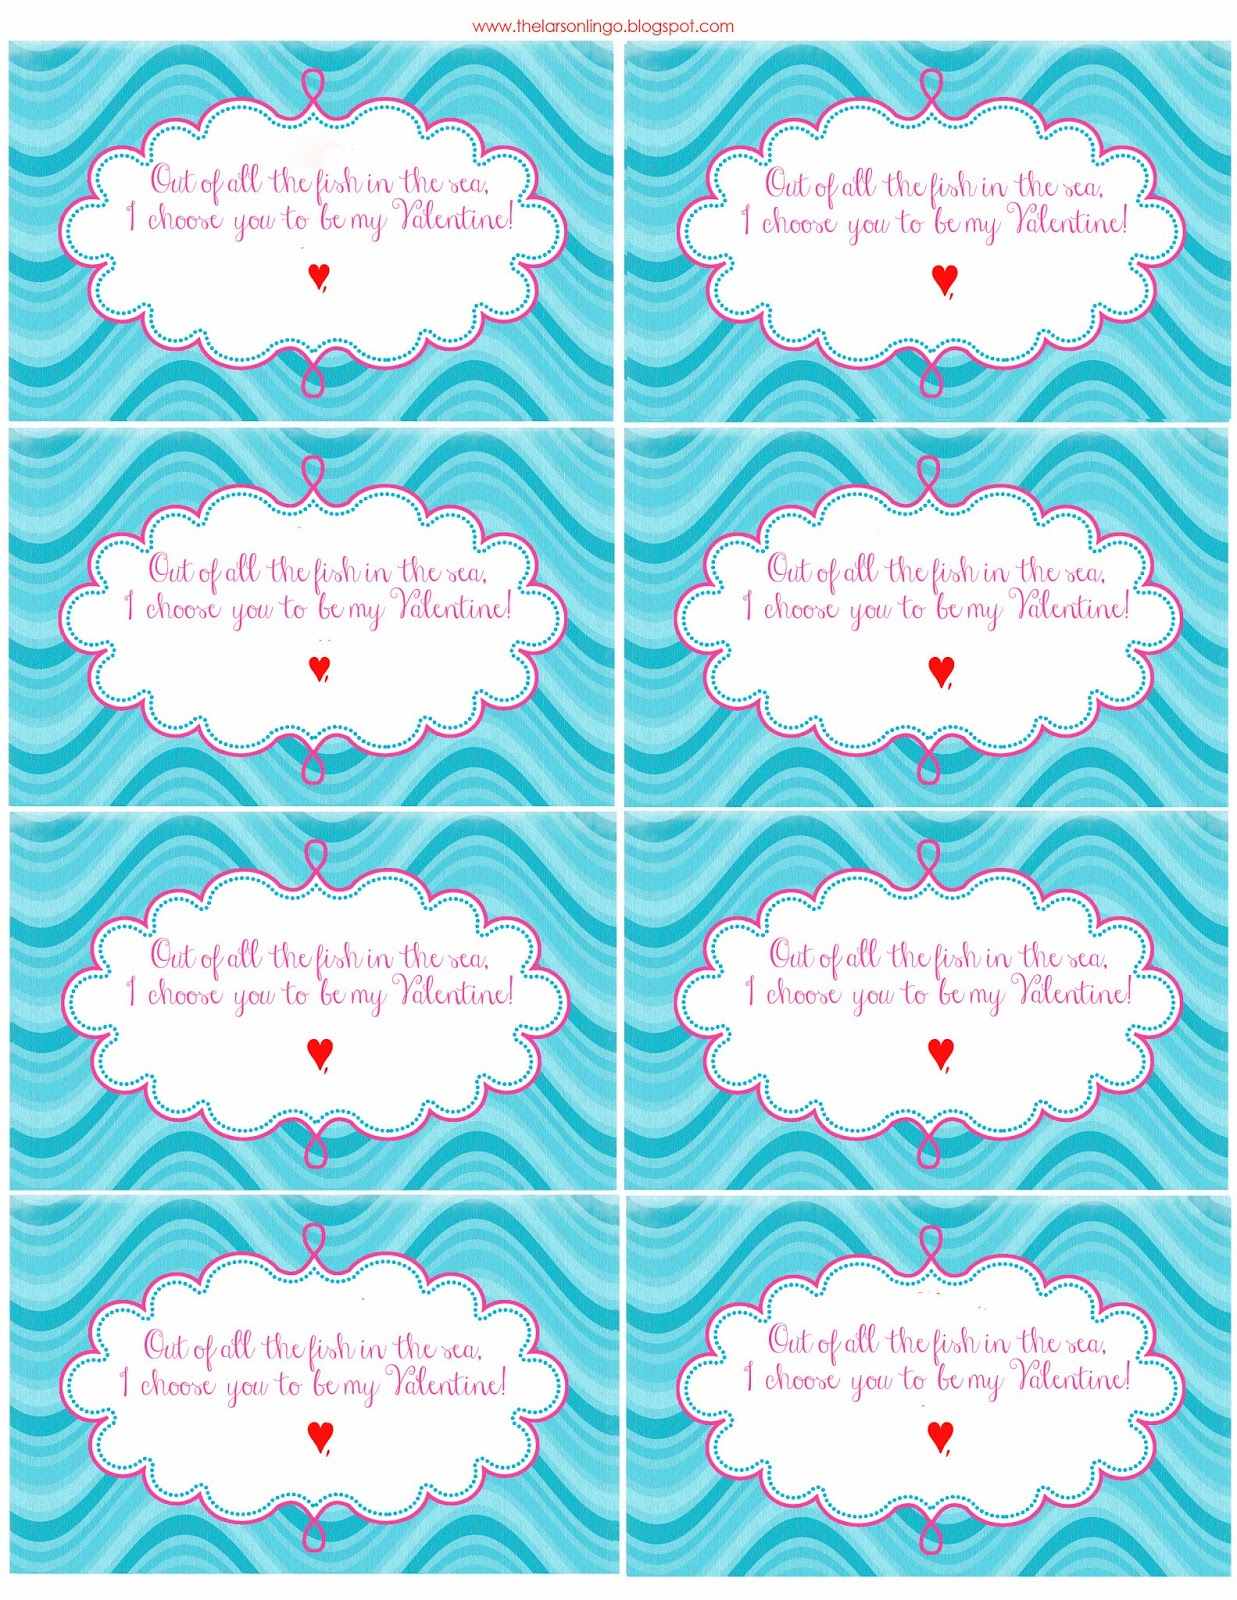 photograph regarding Goldfish Valentine Printable named The Larson Lingo: Fish-y Valentines Totally free Printables